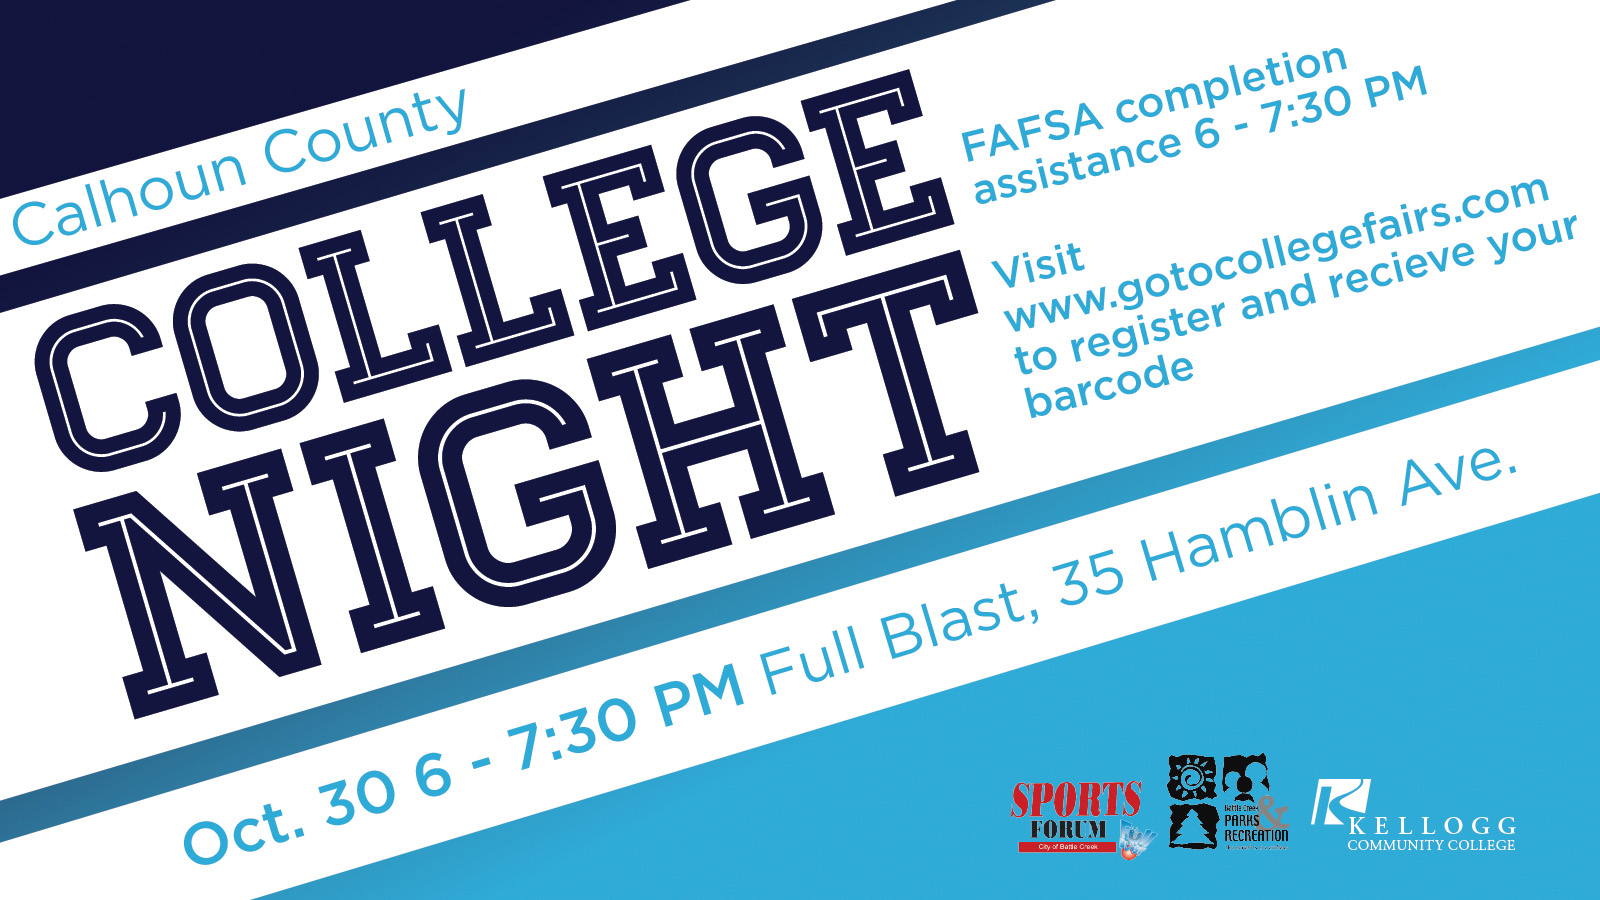 A text slide promoting Calhoun County College Night, scheduled for 6 to 7:30 p.m. Oct. 30 at Full Blast in downtown Battle Creek.